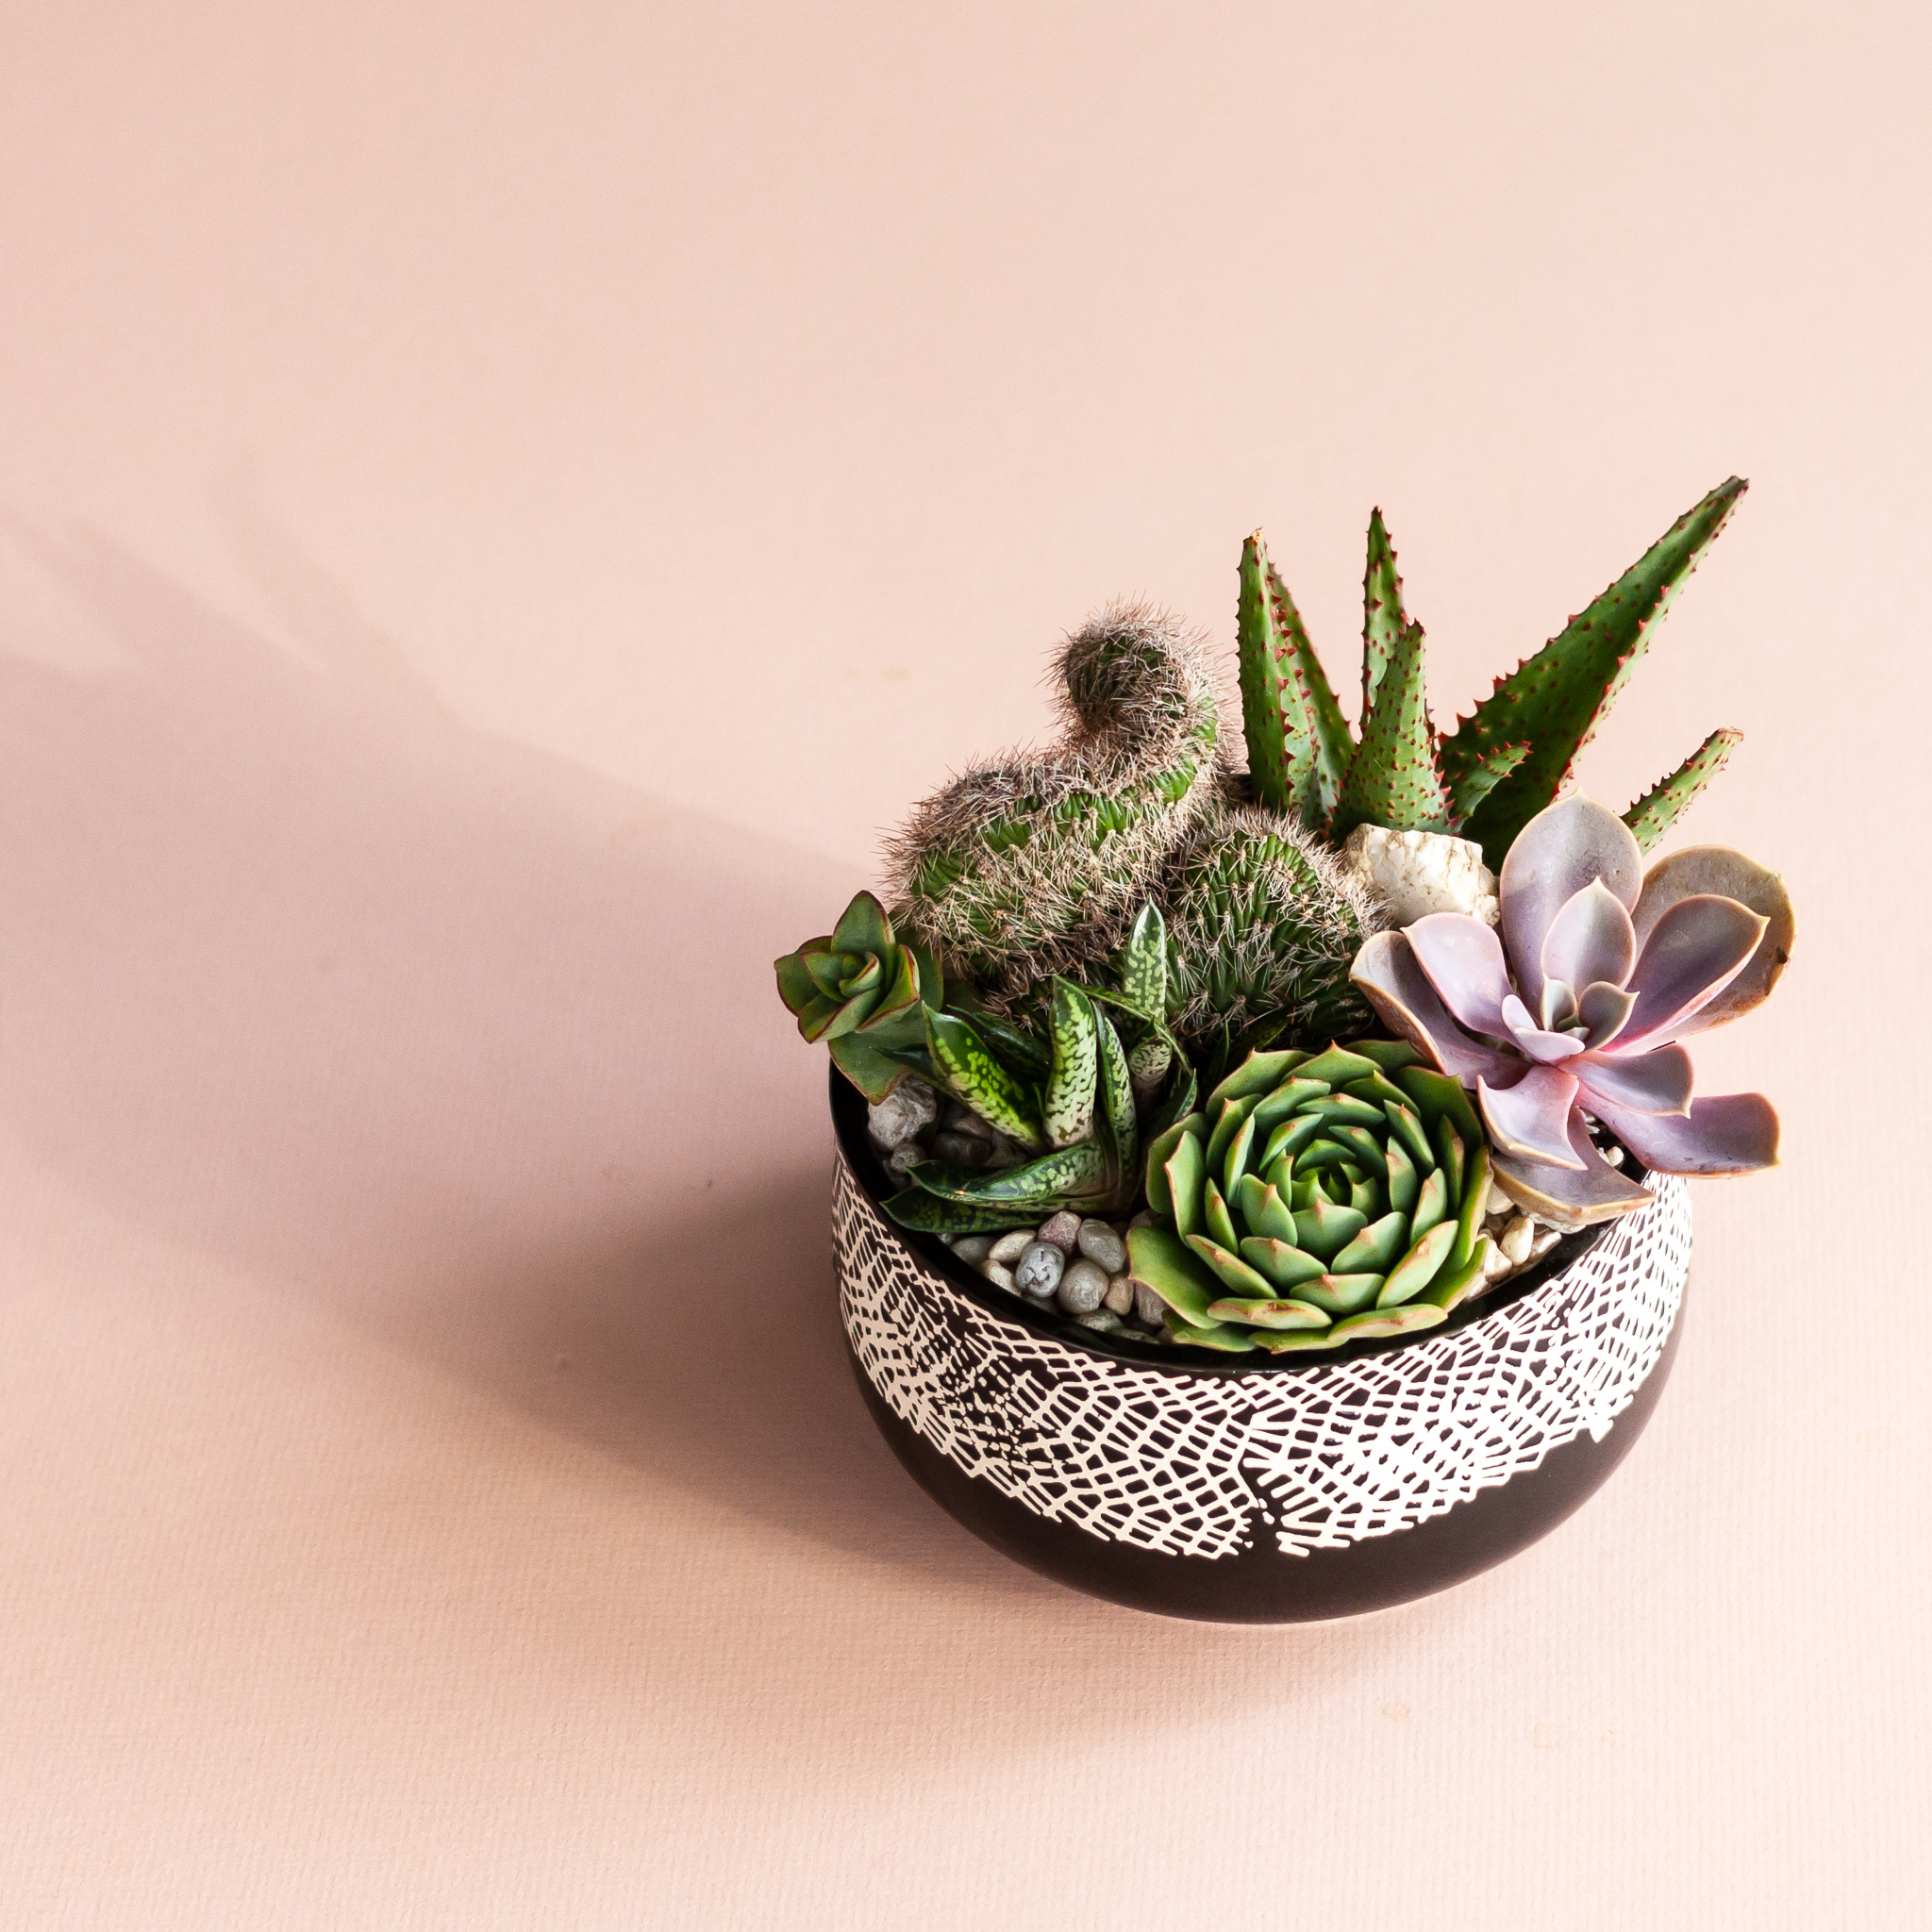 "5- 6"" Modern Ceramic Planter $55 per person - 5"" - 6"" modern ceramic planters with 5 succulents. Guests choose from a variety of beautiful planter options.photo above is just an example"